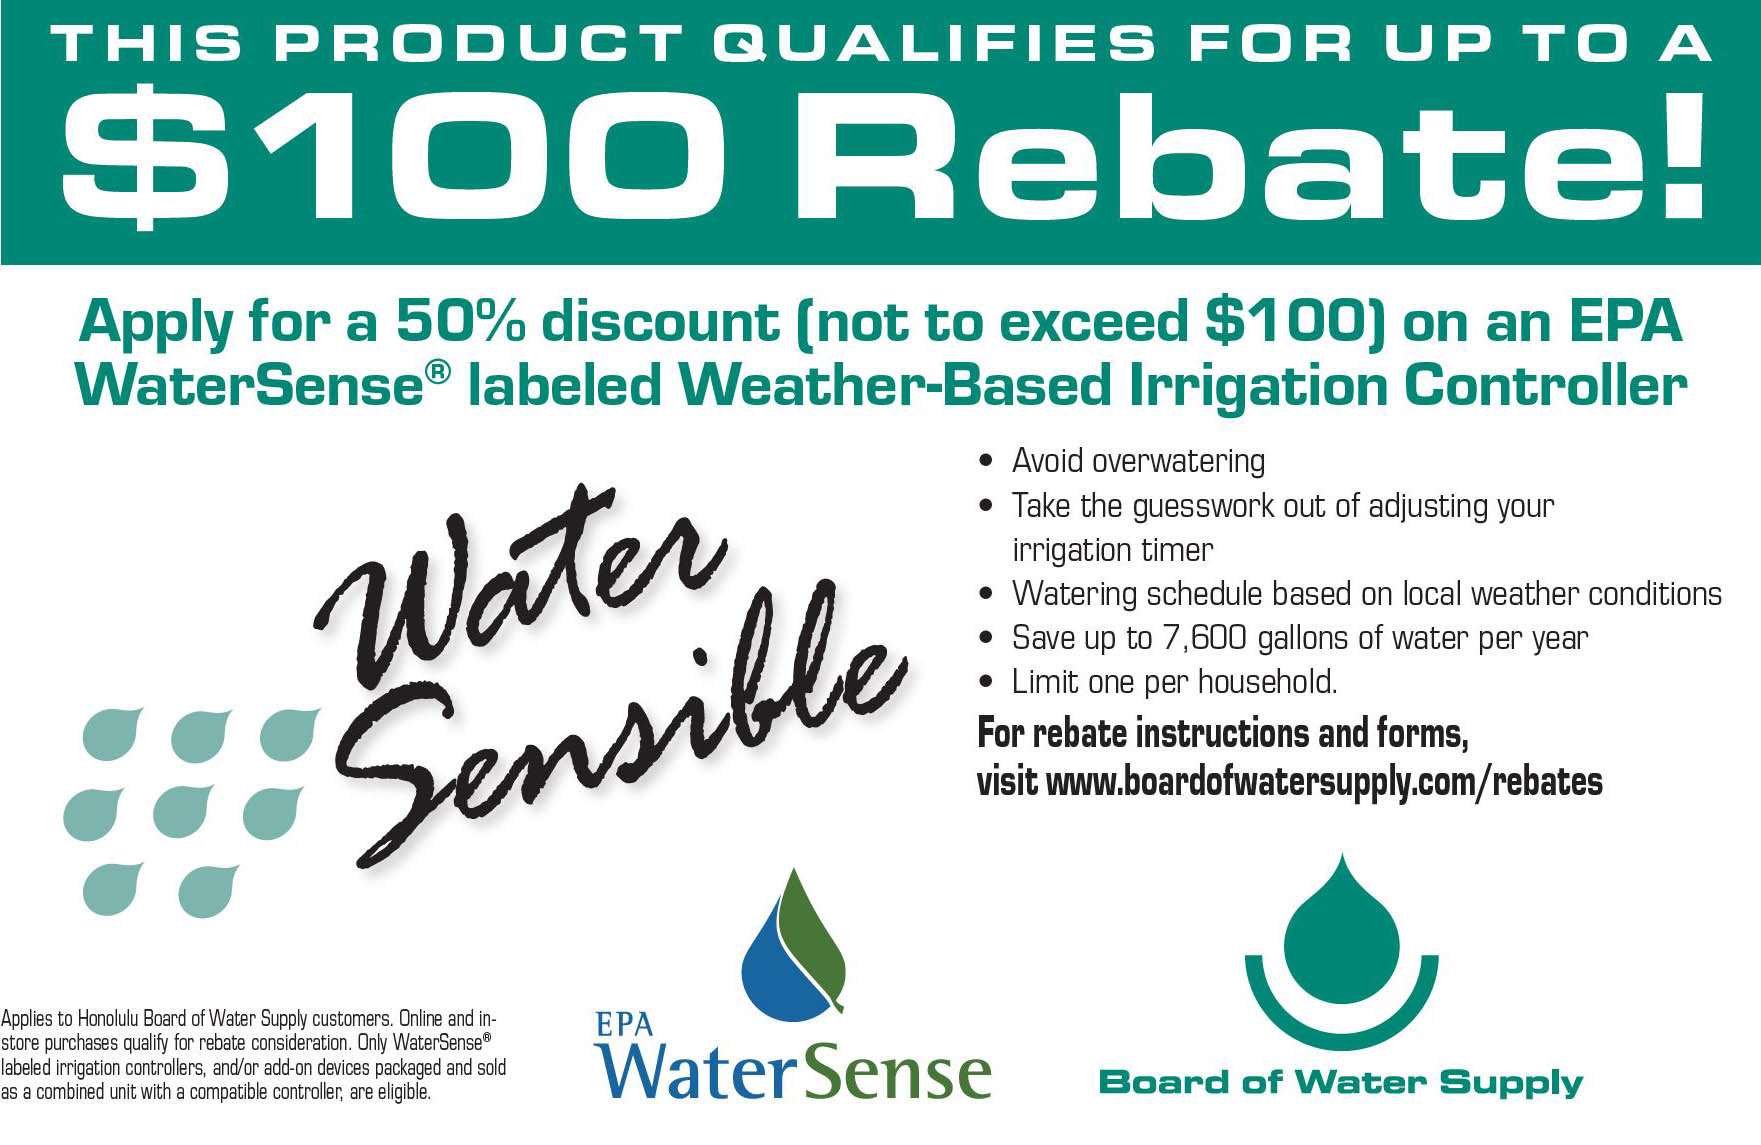 weather-based irrigation controller rebate